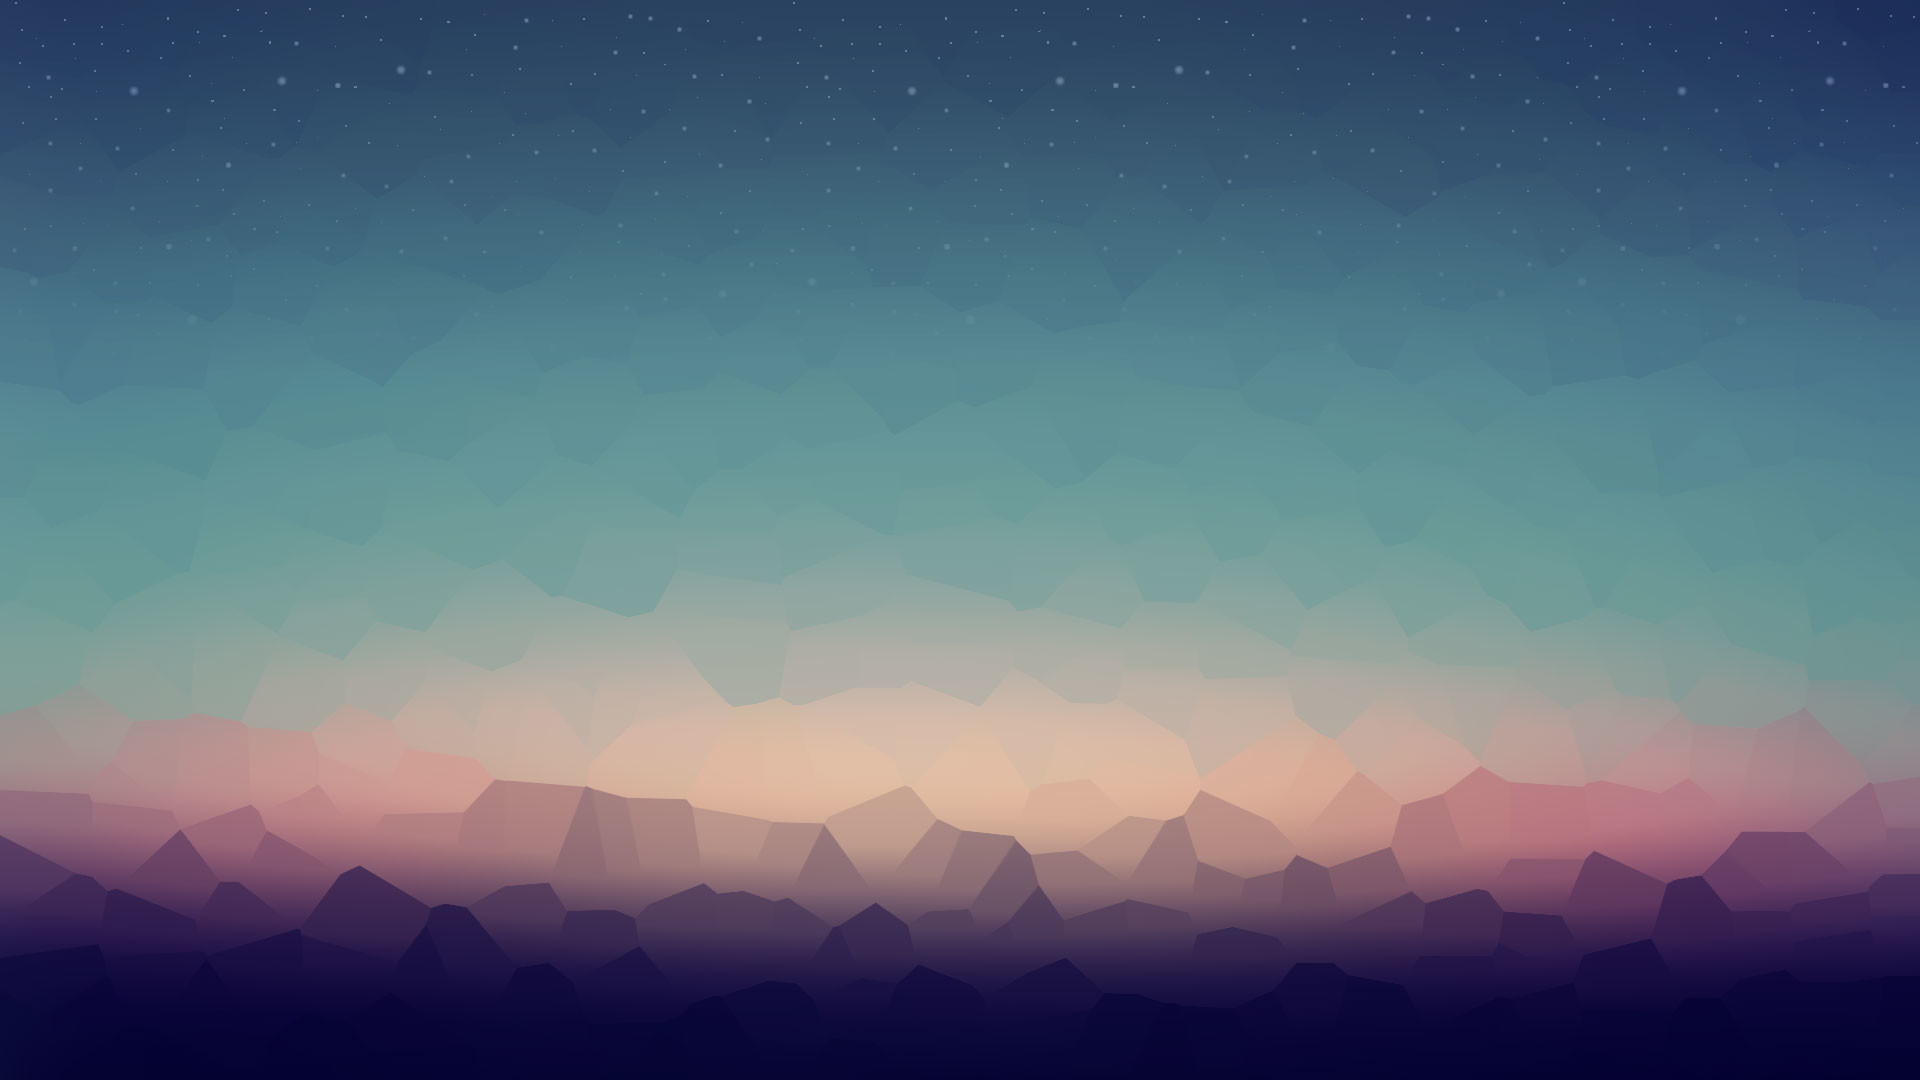 ceystalhorizon-flat-design-wallpapers-HD-free-wallpapers -backgrounds-images-FHD-4k-download-2014-2015-2016